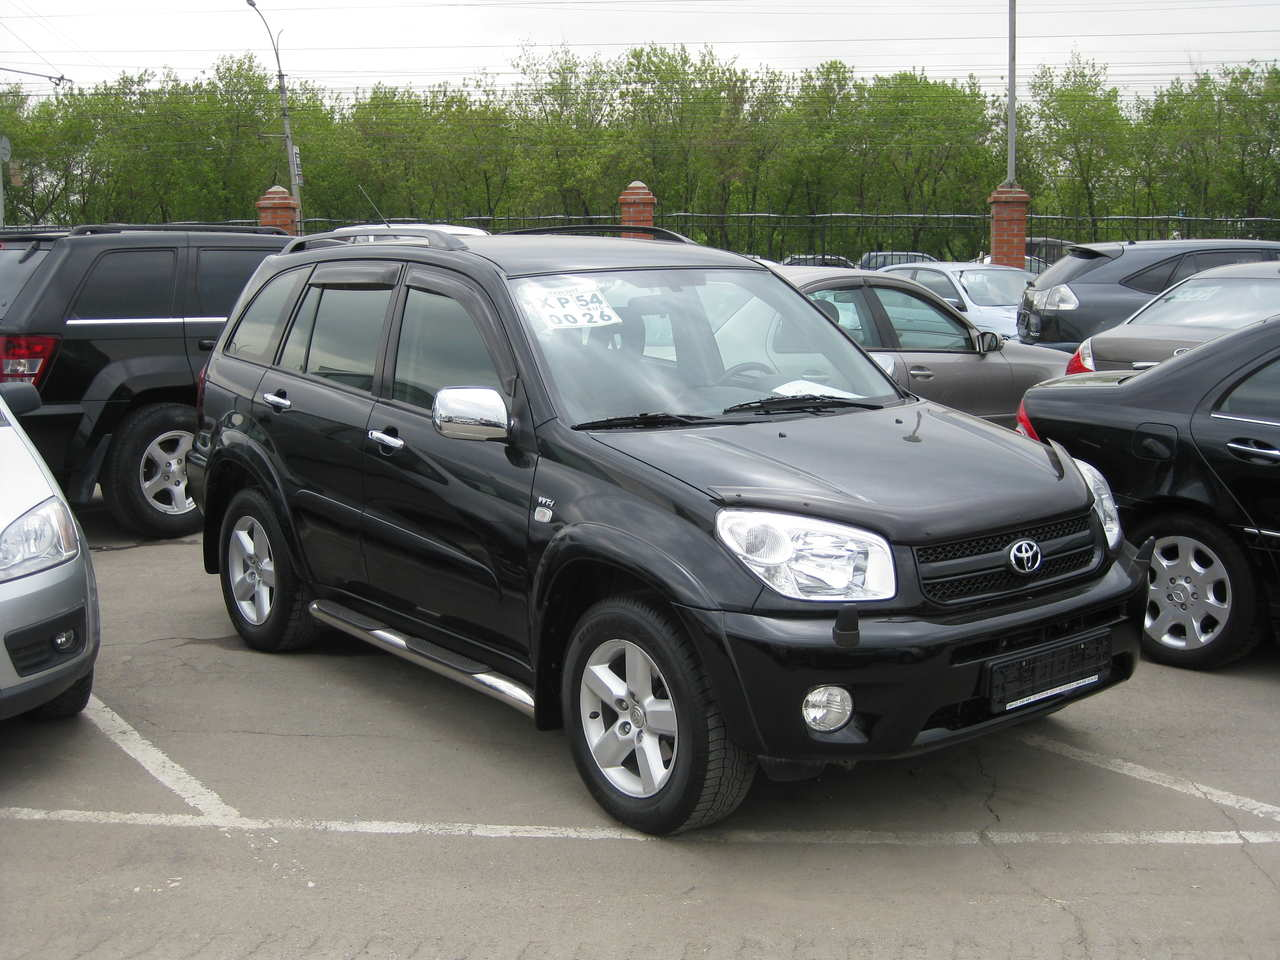 Used 2005 Toyota Rav4 Photos 2000cc Gasoline Automatic For Sale 2001 Wiring Diagram Photo 1 Enlarge 1280x960